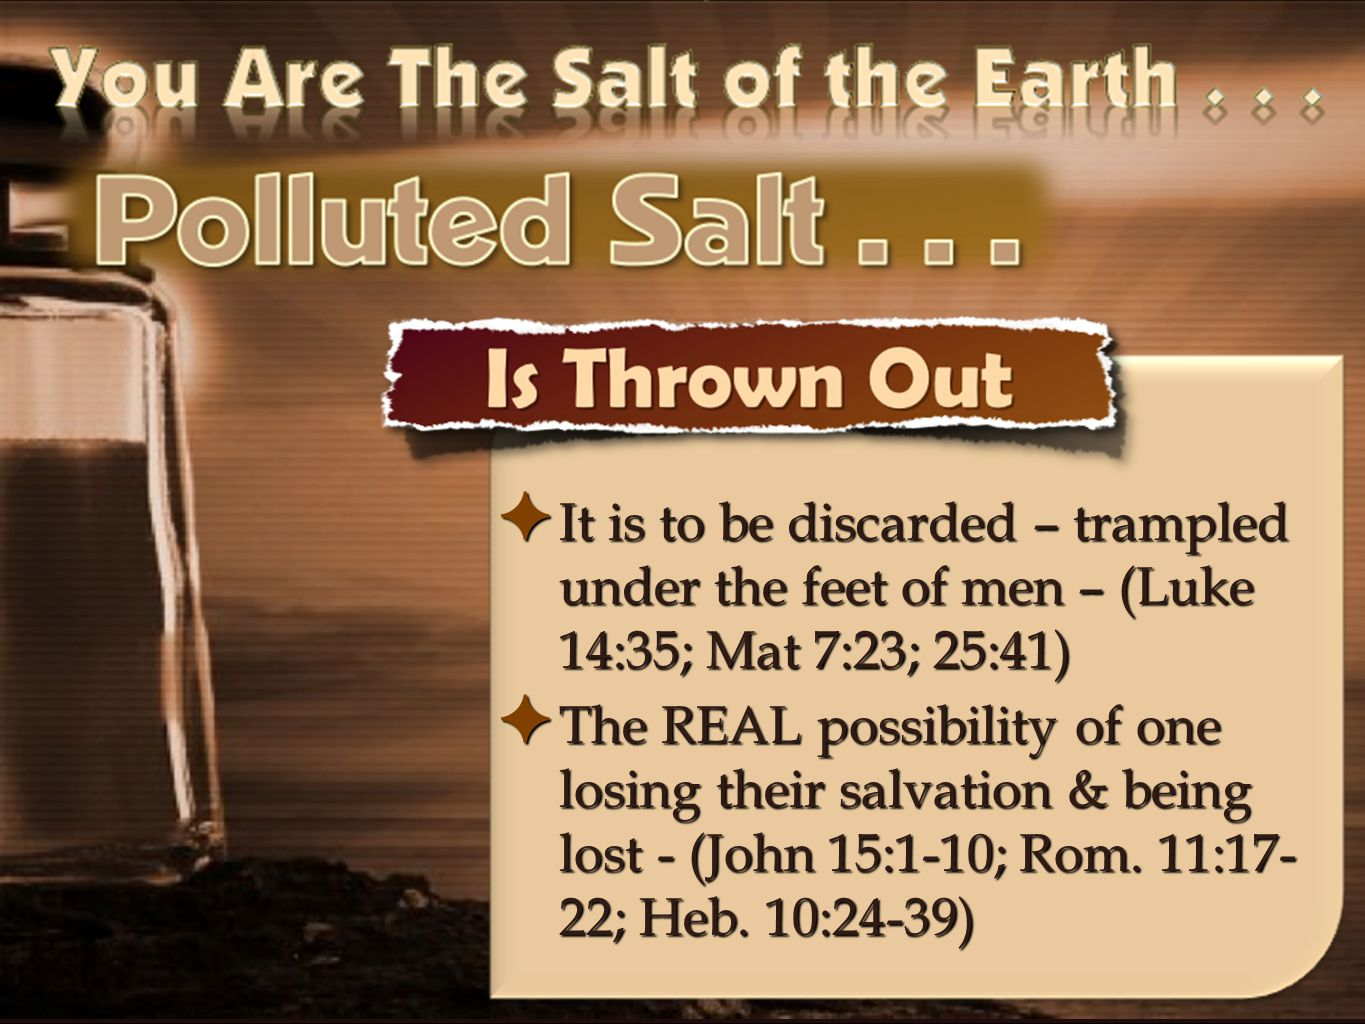 ✦ It is to be discarded – trampled under the feet of men – (Luke 14:35; Mat 7:23; 25:41) ✦ The REAL possibility of one losing their salvation & being